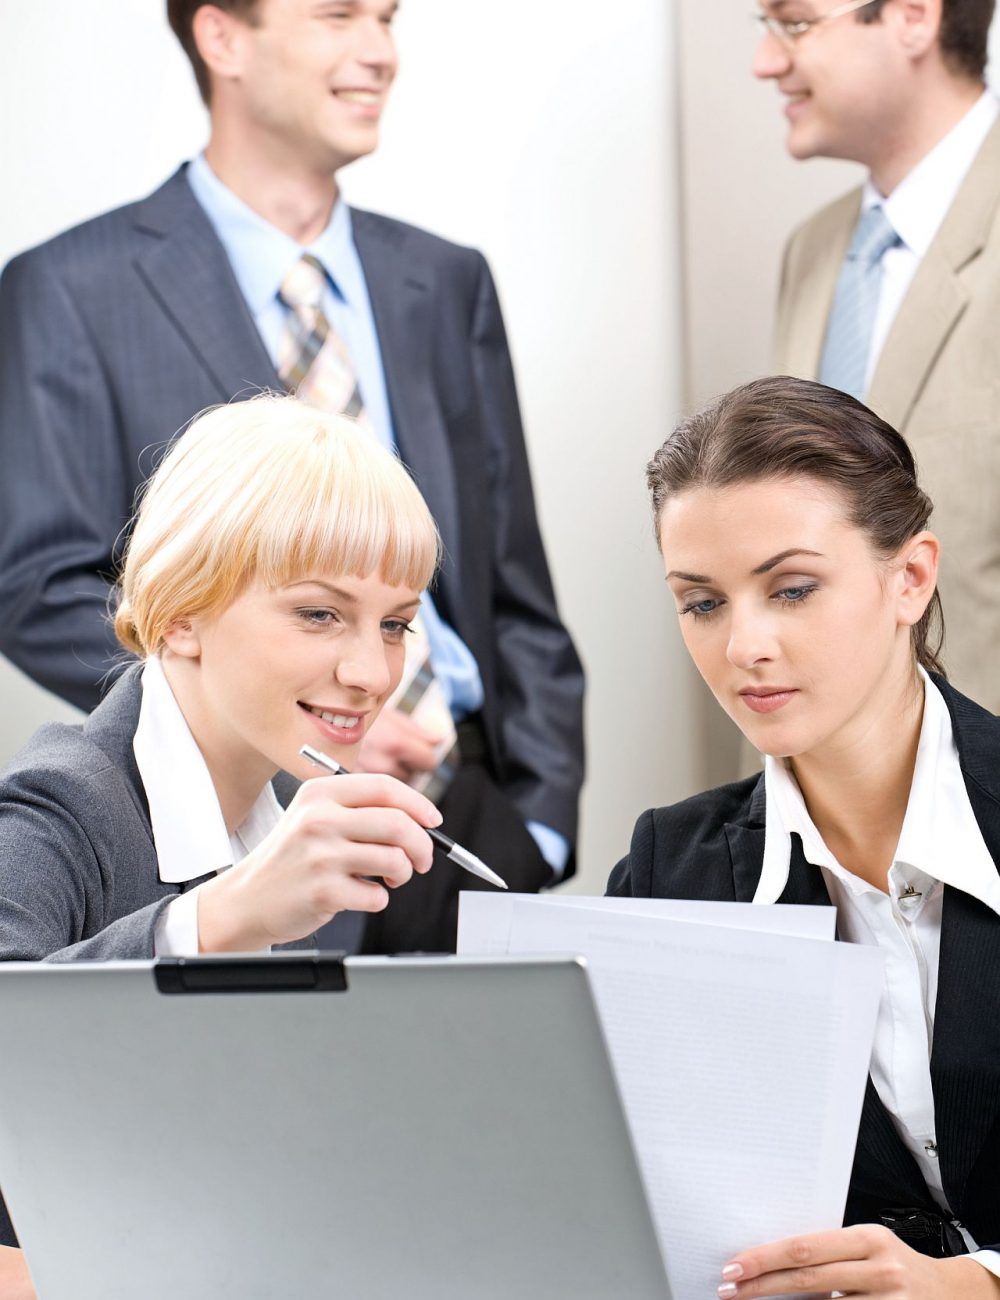 Business woman is giving a consultation to her colleague on the background of business people